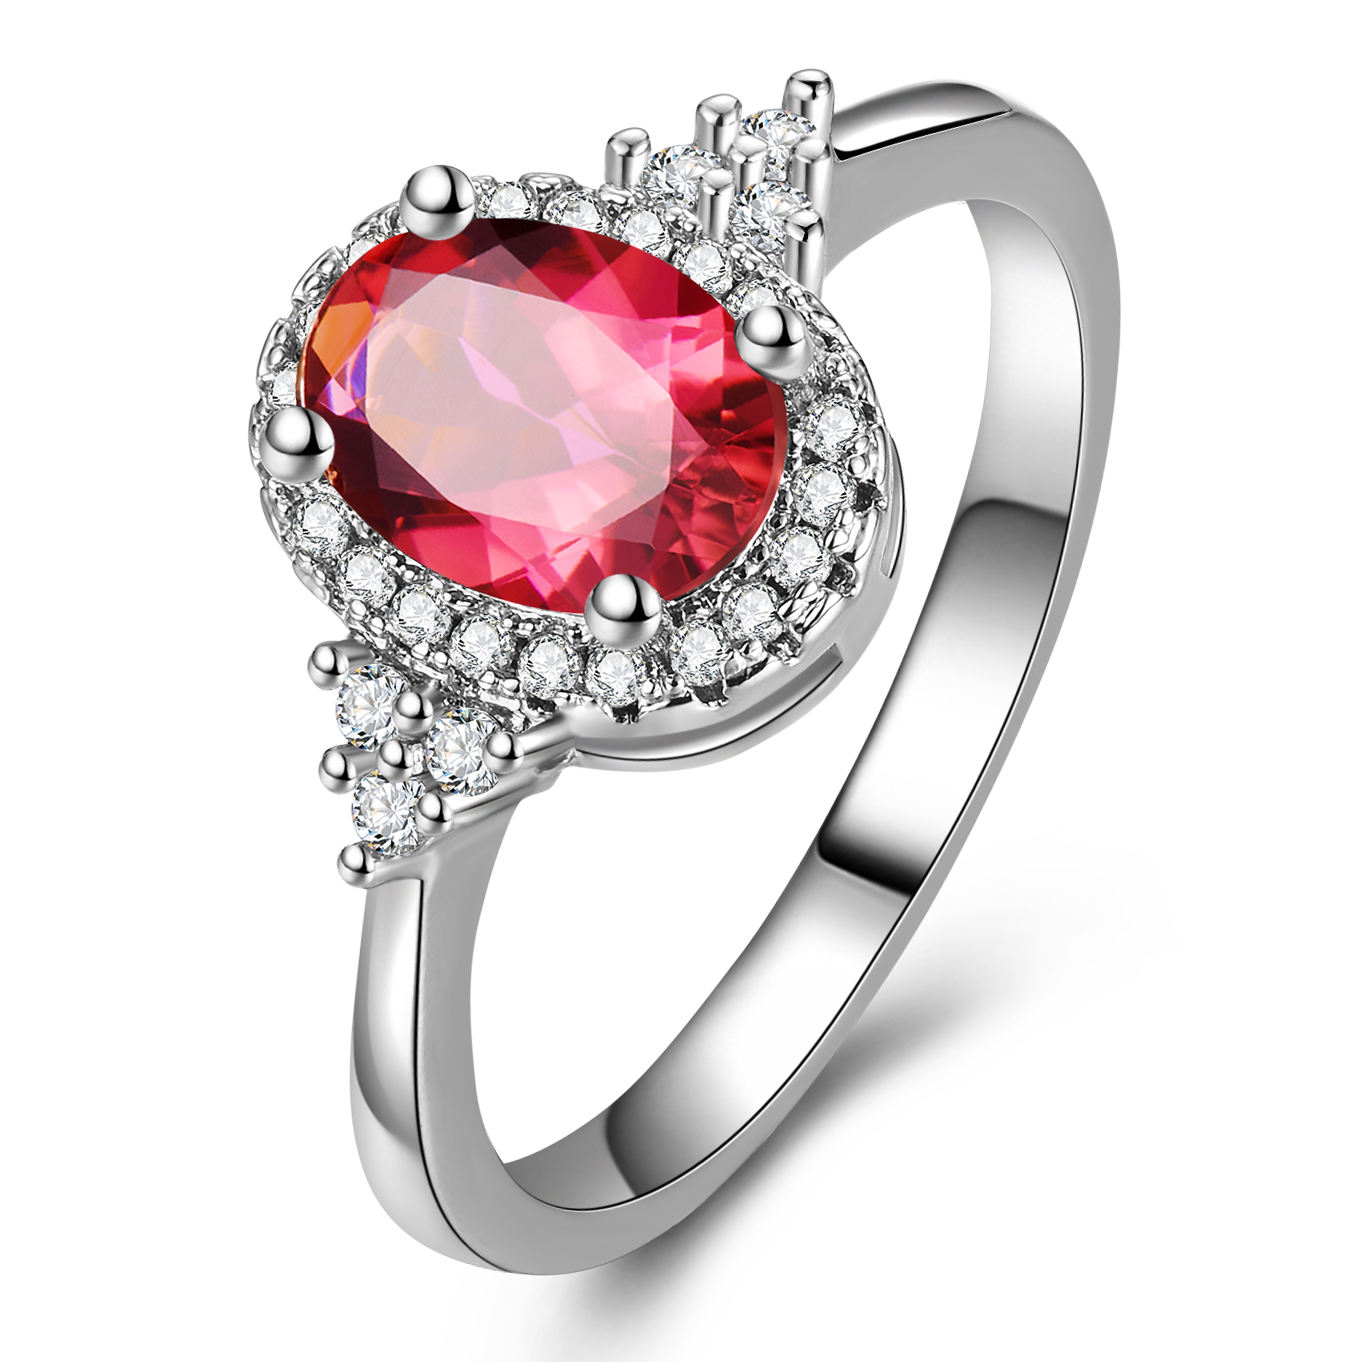 High quality red oval jewelry ring lady vintage zircon ring women gifts